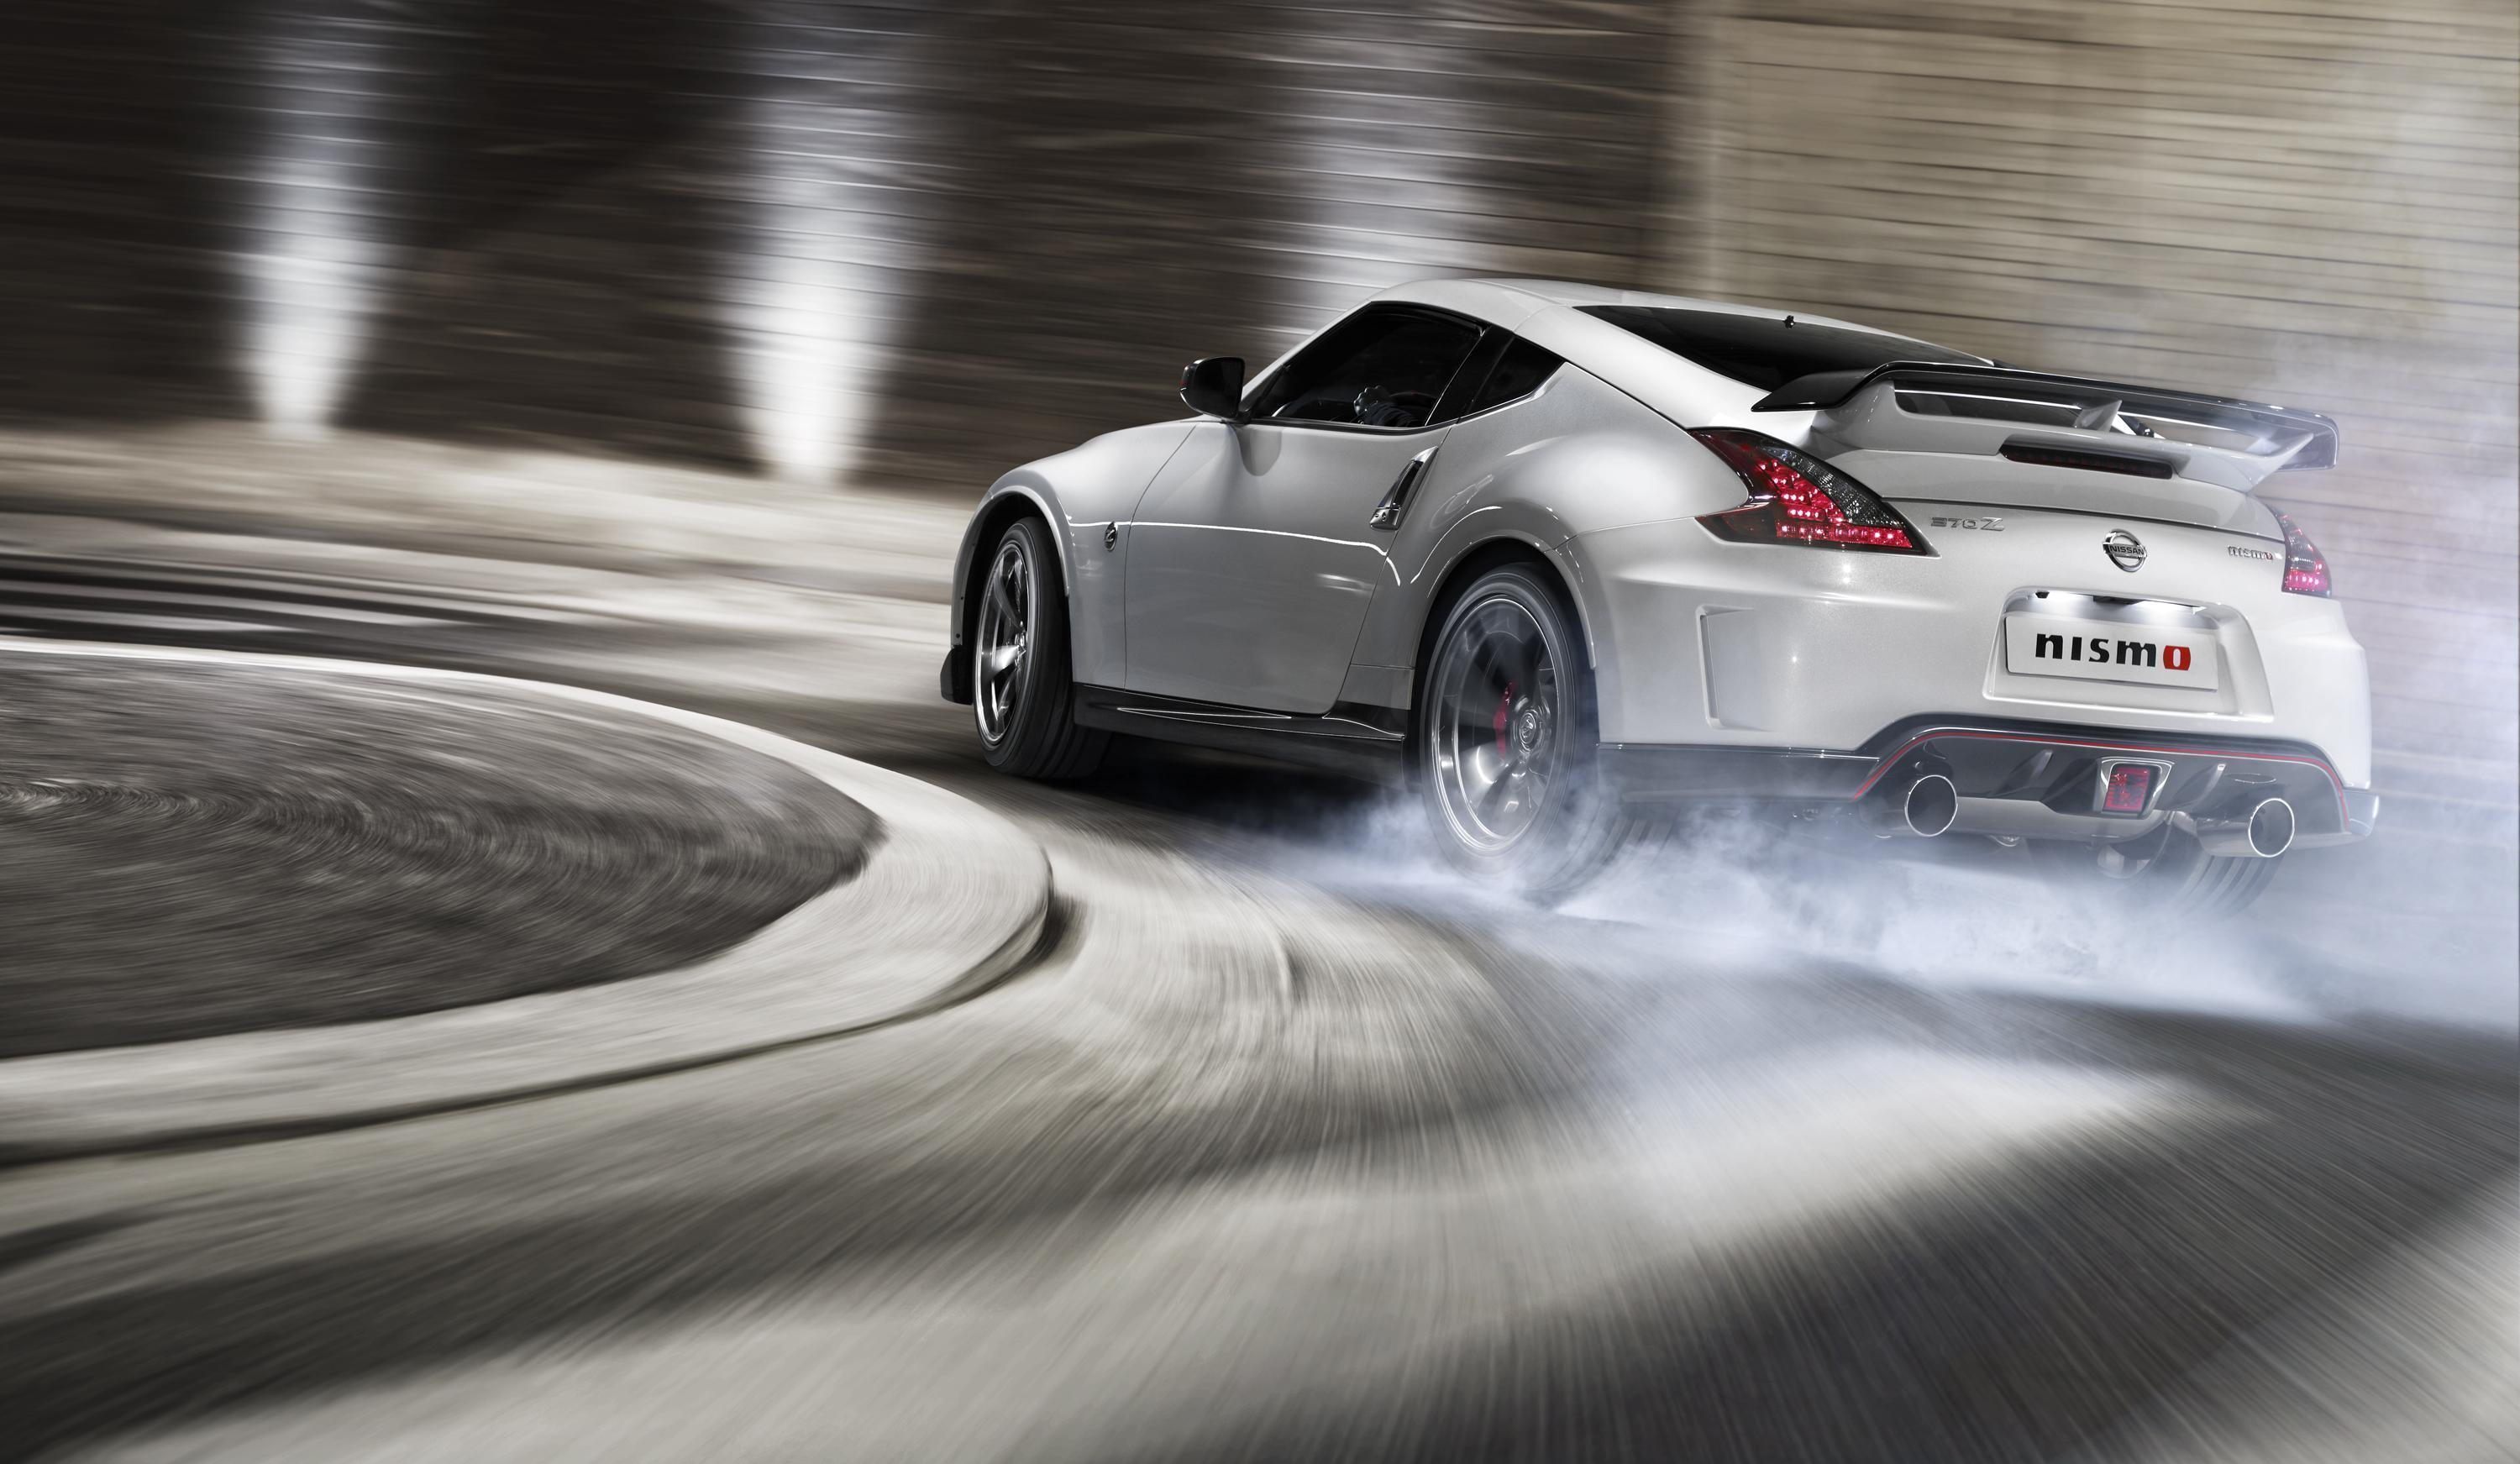 2015 nissan 370z wallpapers - wallpaper cave